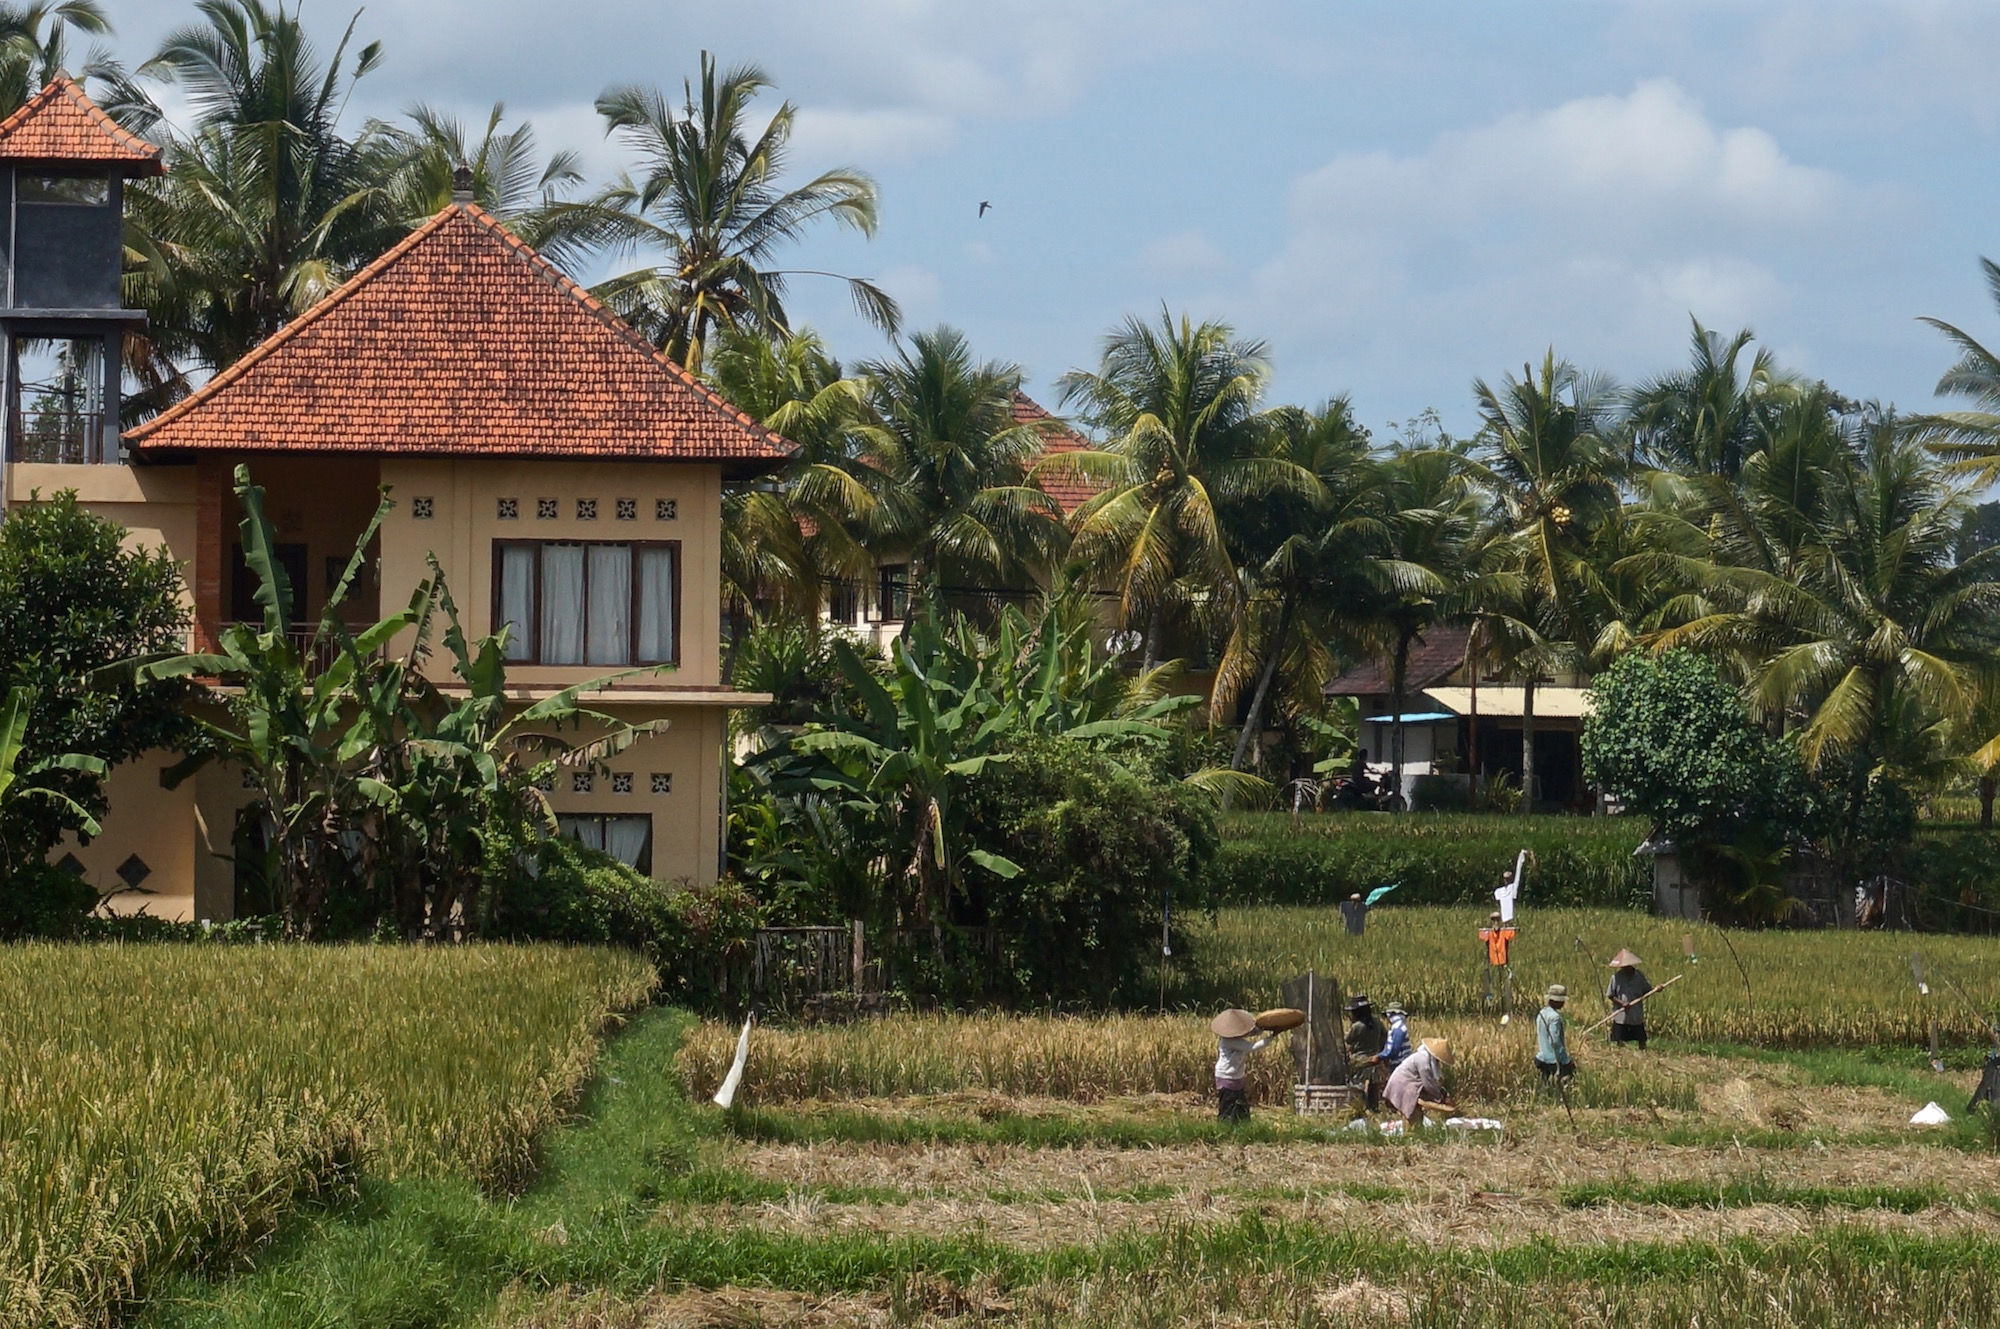 Things to do in Bali - Rice Fields - Ubud